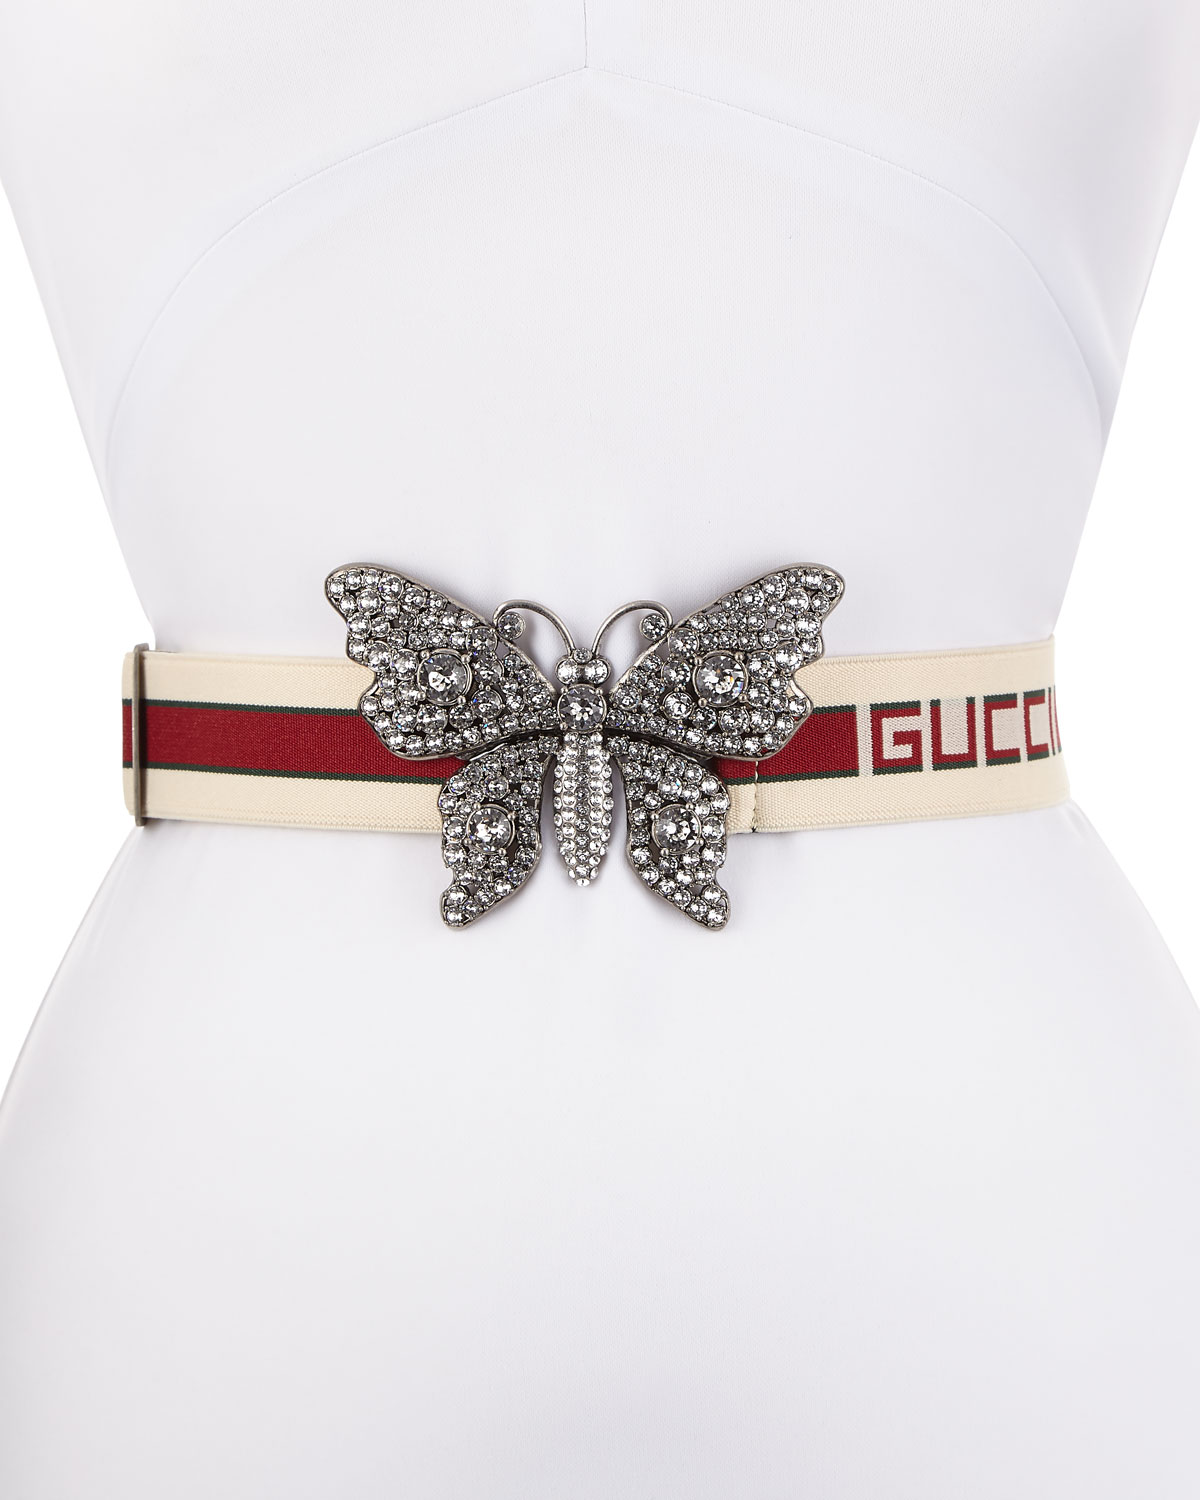 0b519c21bf3 Gucci Elastic Striped Belt w  Crystal Butterfly Buckle